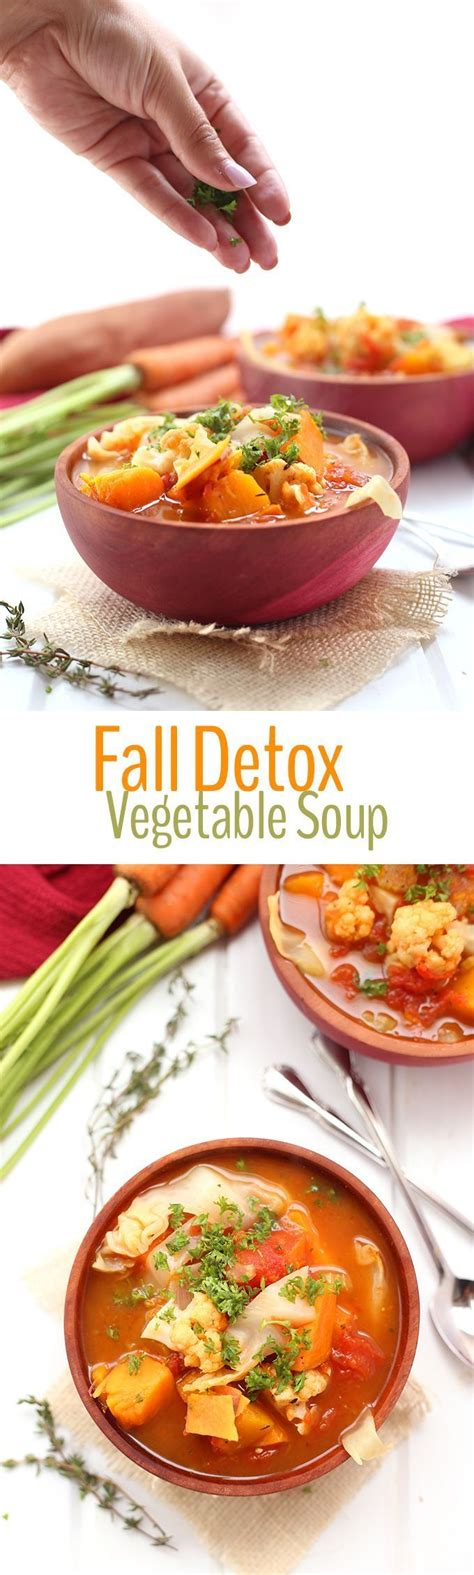 Detox With Vegetables by Different Vegetables Detox And Vegetables On